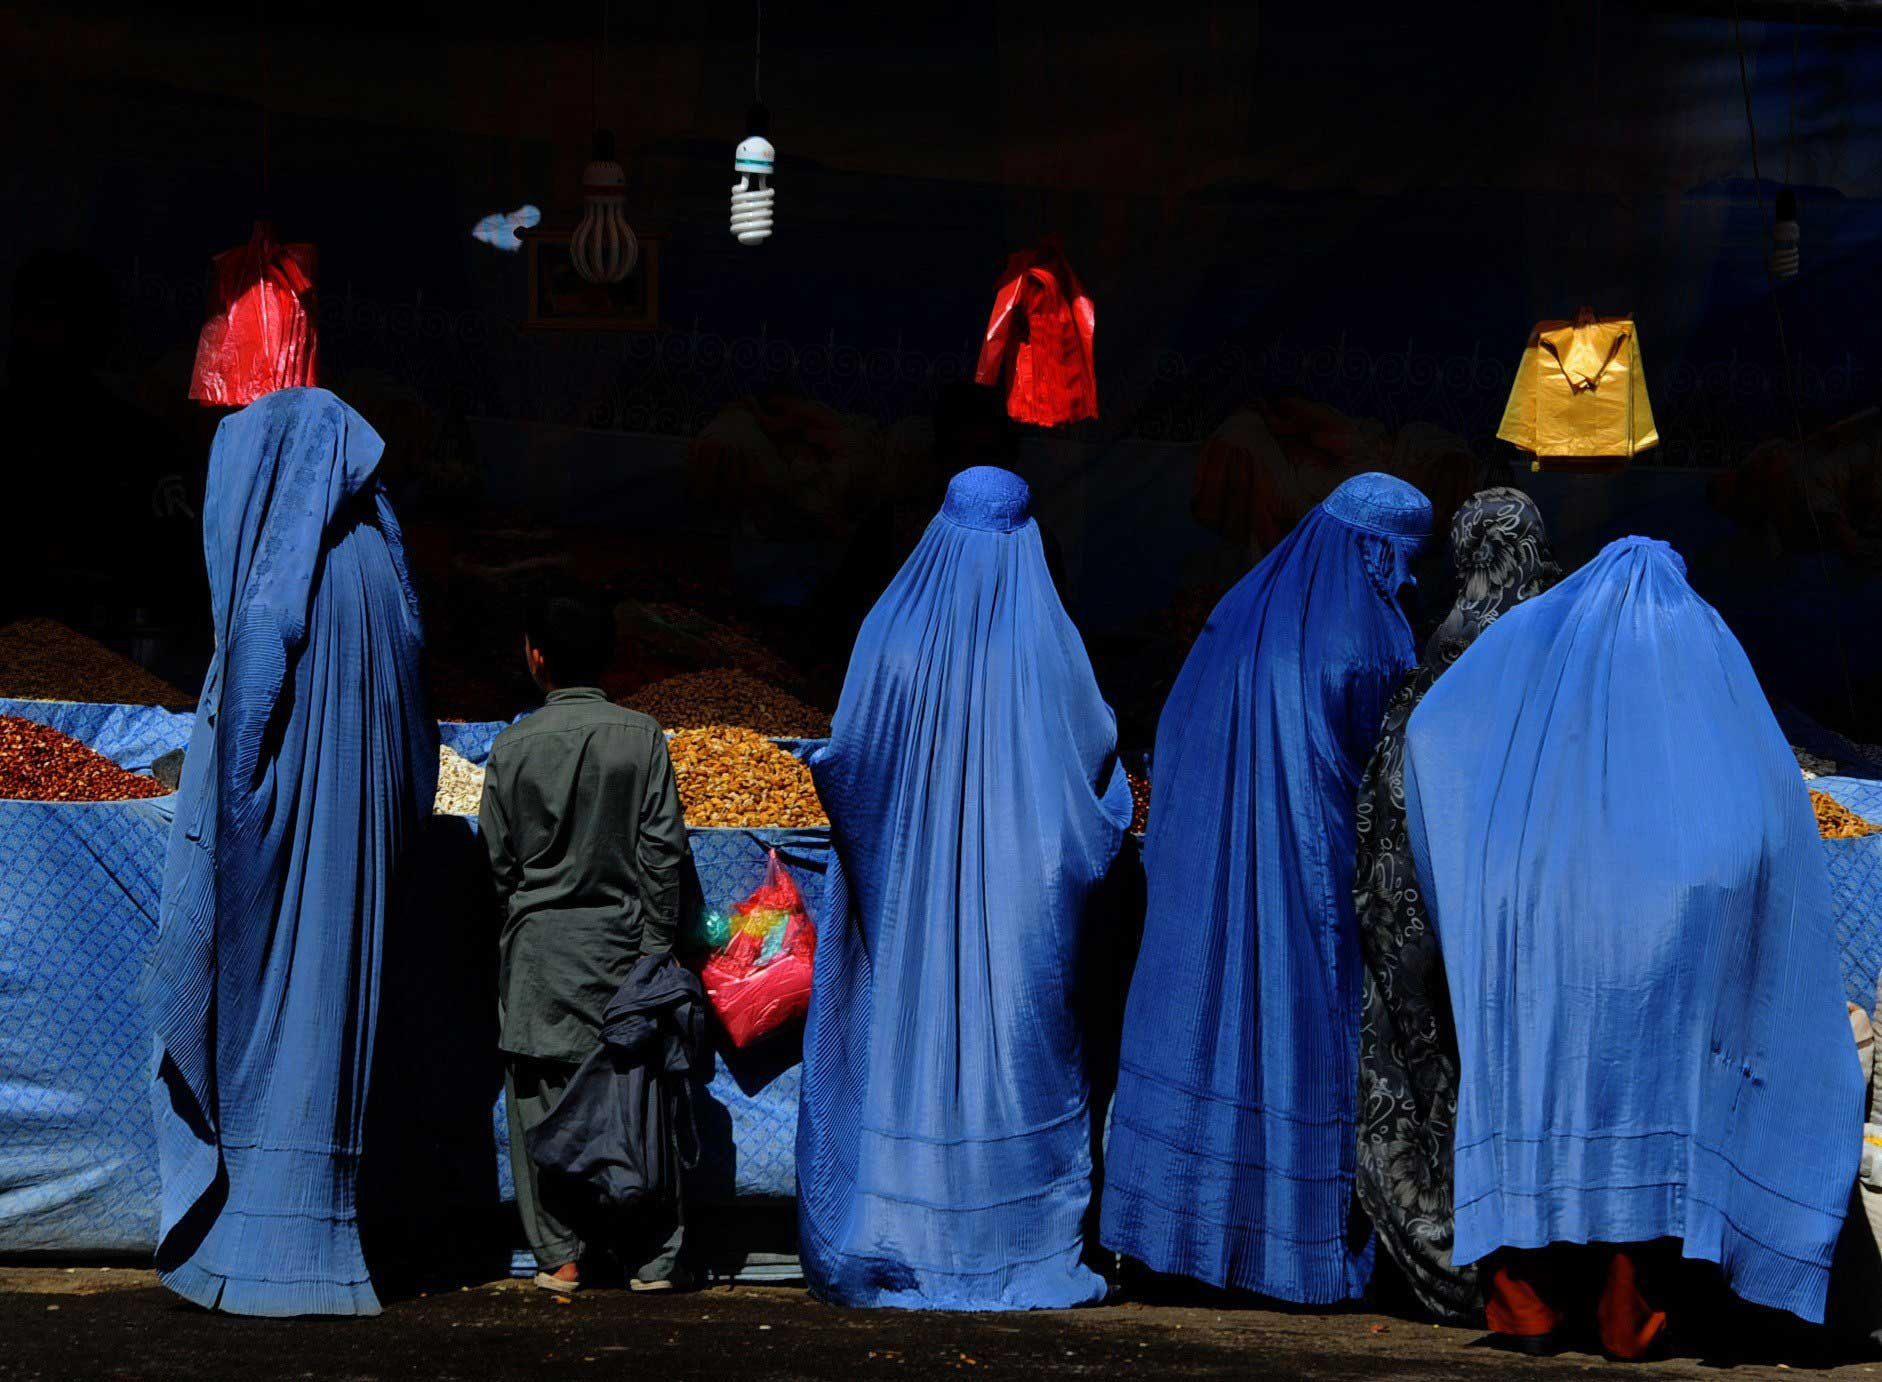 Oct. 1, 2014. Afghan women buy fruit at one of the main markets in Herat. Muslims across the world are preparing to celebrate the annual festival of Eid al-Adha, or the Festival of Sacrifice, which marks the end of the Hajj pilgrimage to Mecca and commemorates Prophet Abraham's readiness to sacrifice his son to show obedience to God.